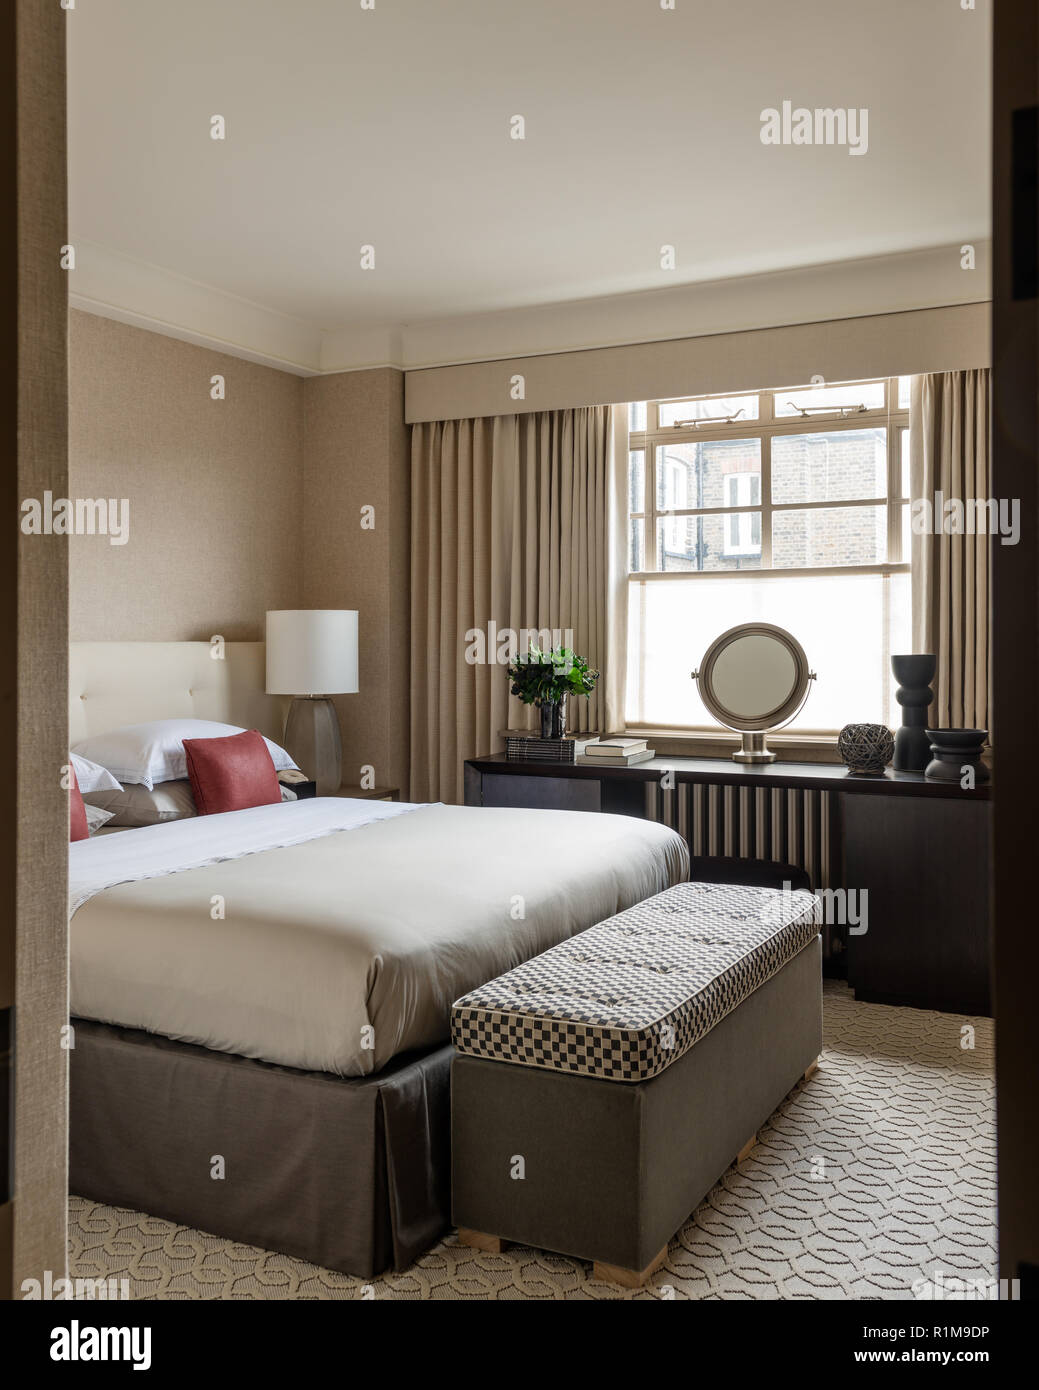 Modern bedroom with dressing table by window - Stock Image